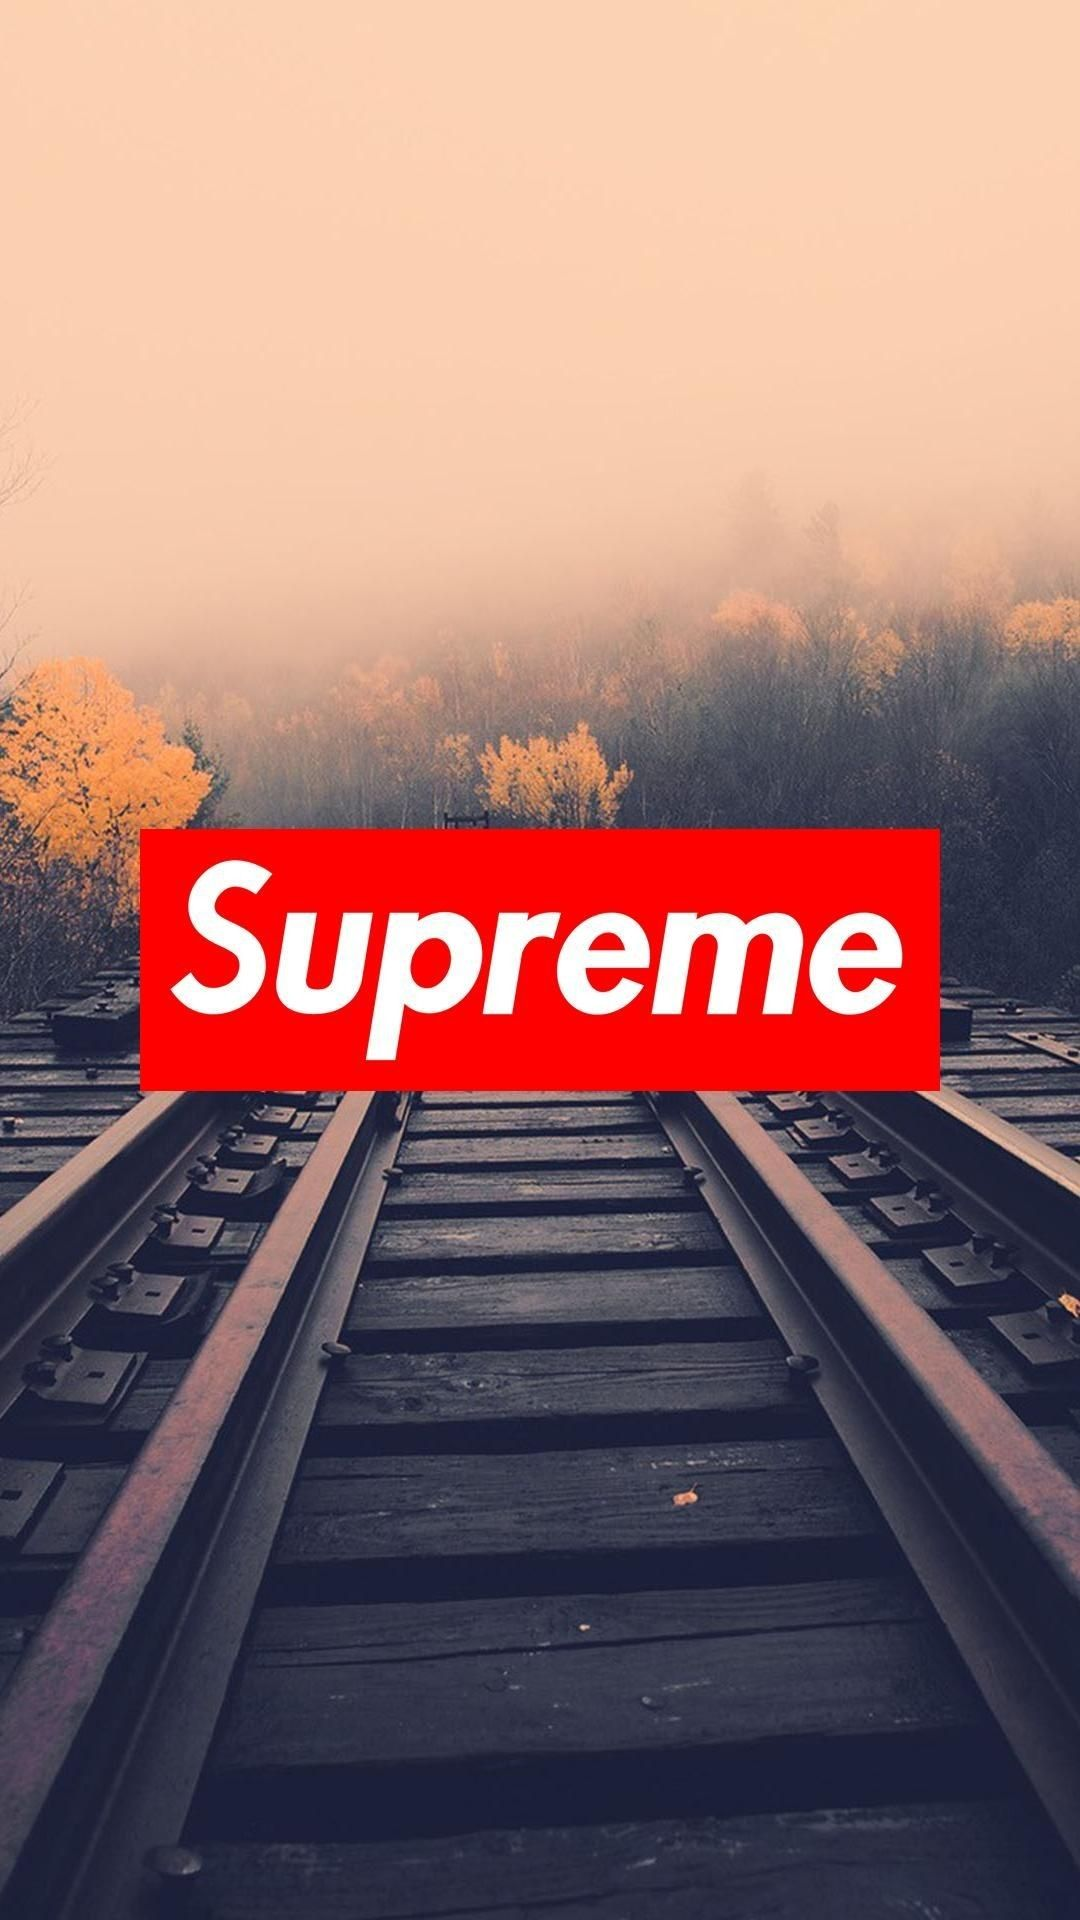 Pin By Frank On Fondos Supreme Iphone Wallpaper Supreme Wallpaper Hd Supreme Wallpaper